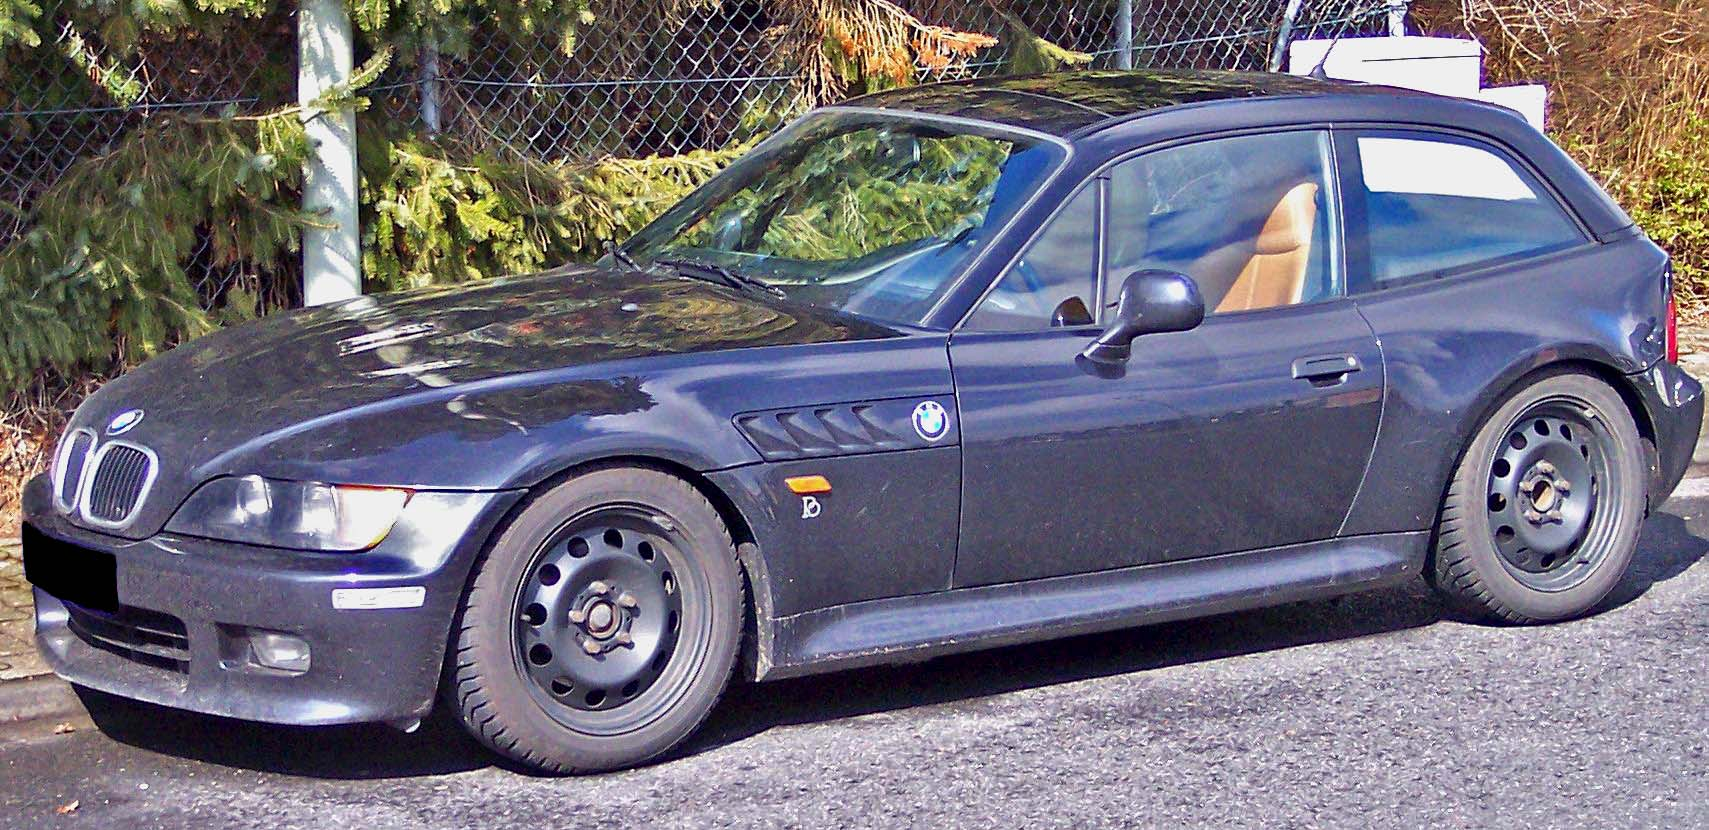 BMW Z3 Coupe vl blue Free Picture Download Image Of